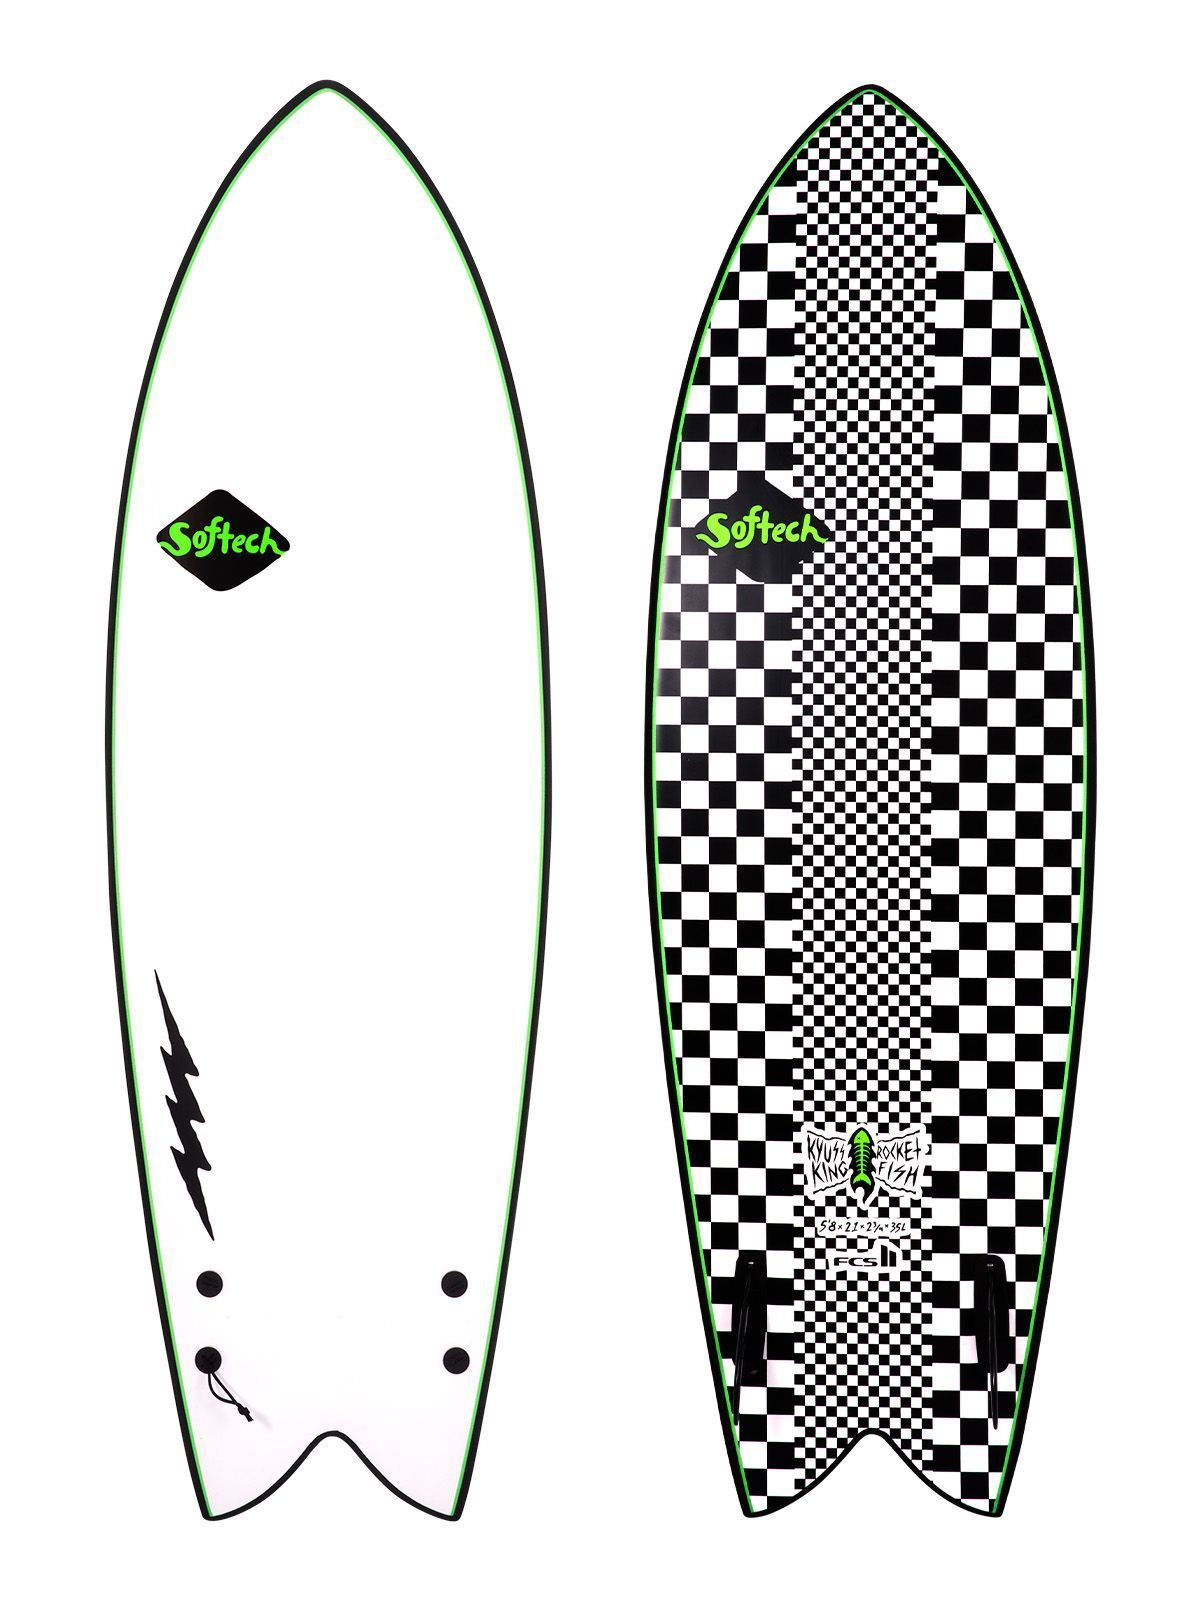 Softech Kyuss King Fish - Board Store SoftechSoftboard